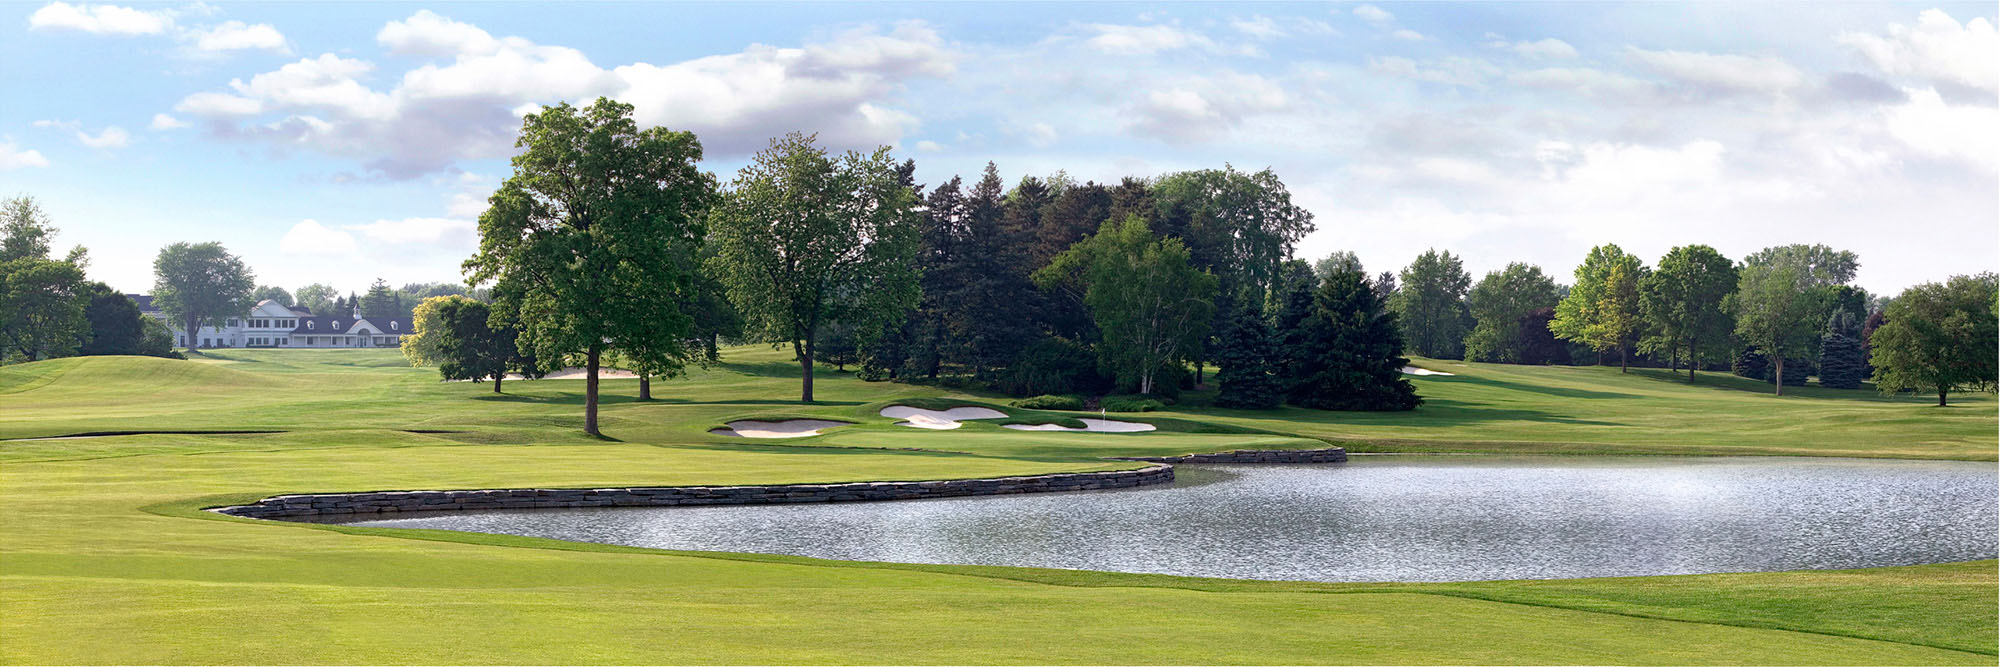 Golf Course Image - Oakland Hills No. 16